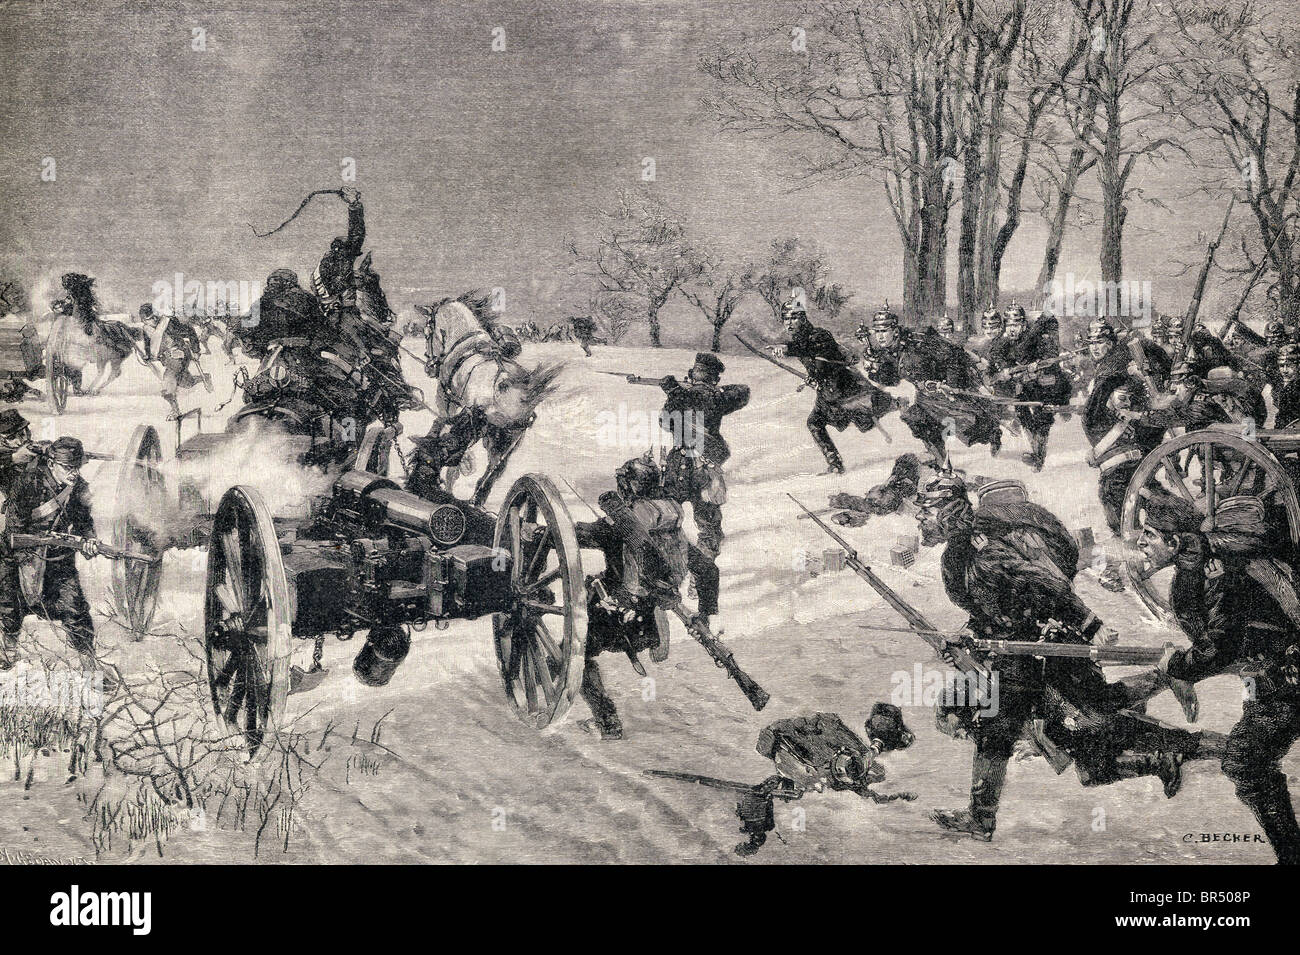 The Battle of Le Mans, 10 - 12 January, 1871. Prussian victory during the Franco-Prussian War. - Stock Image